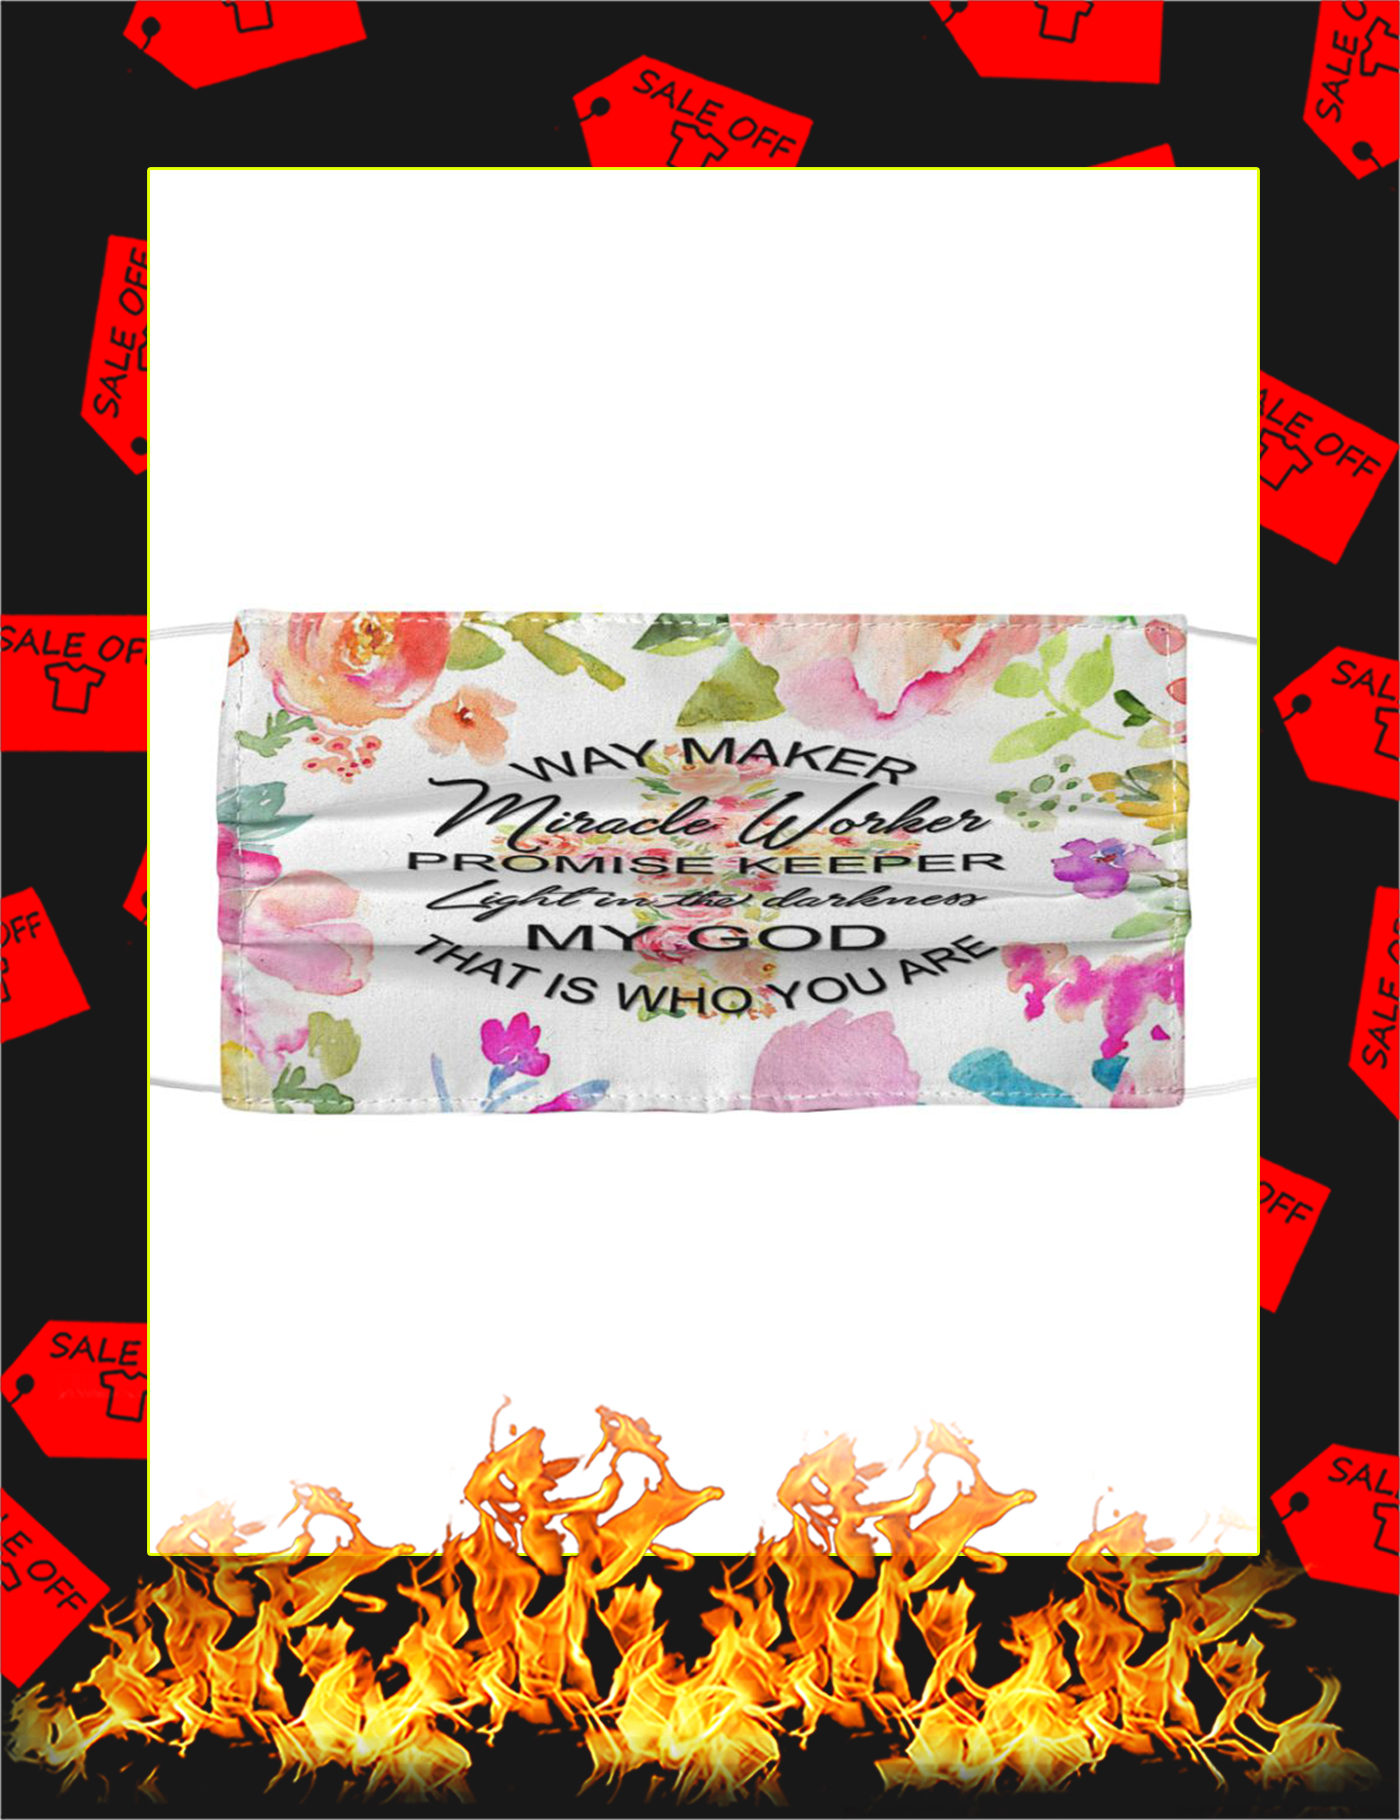 Way Maker Miracle Worker God Flower Face Mask - Picture 1